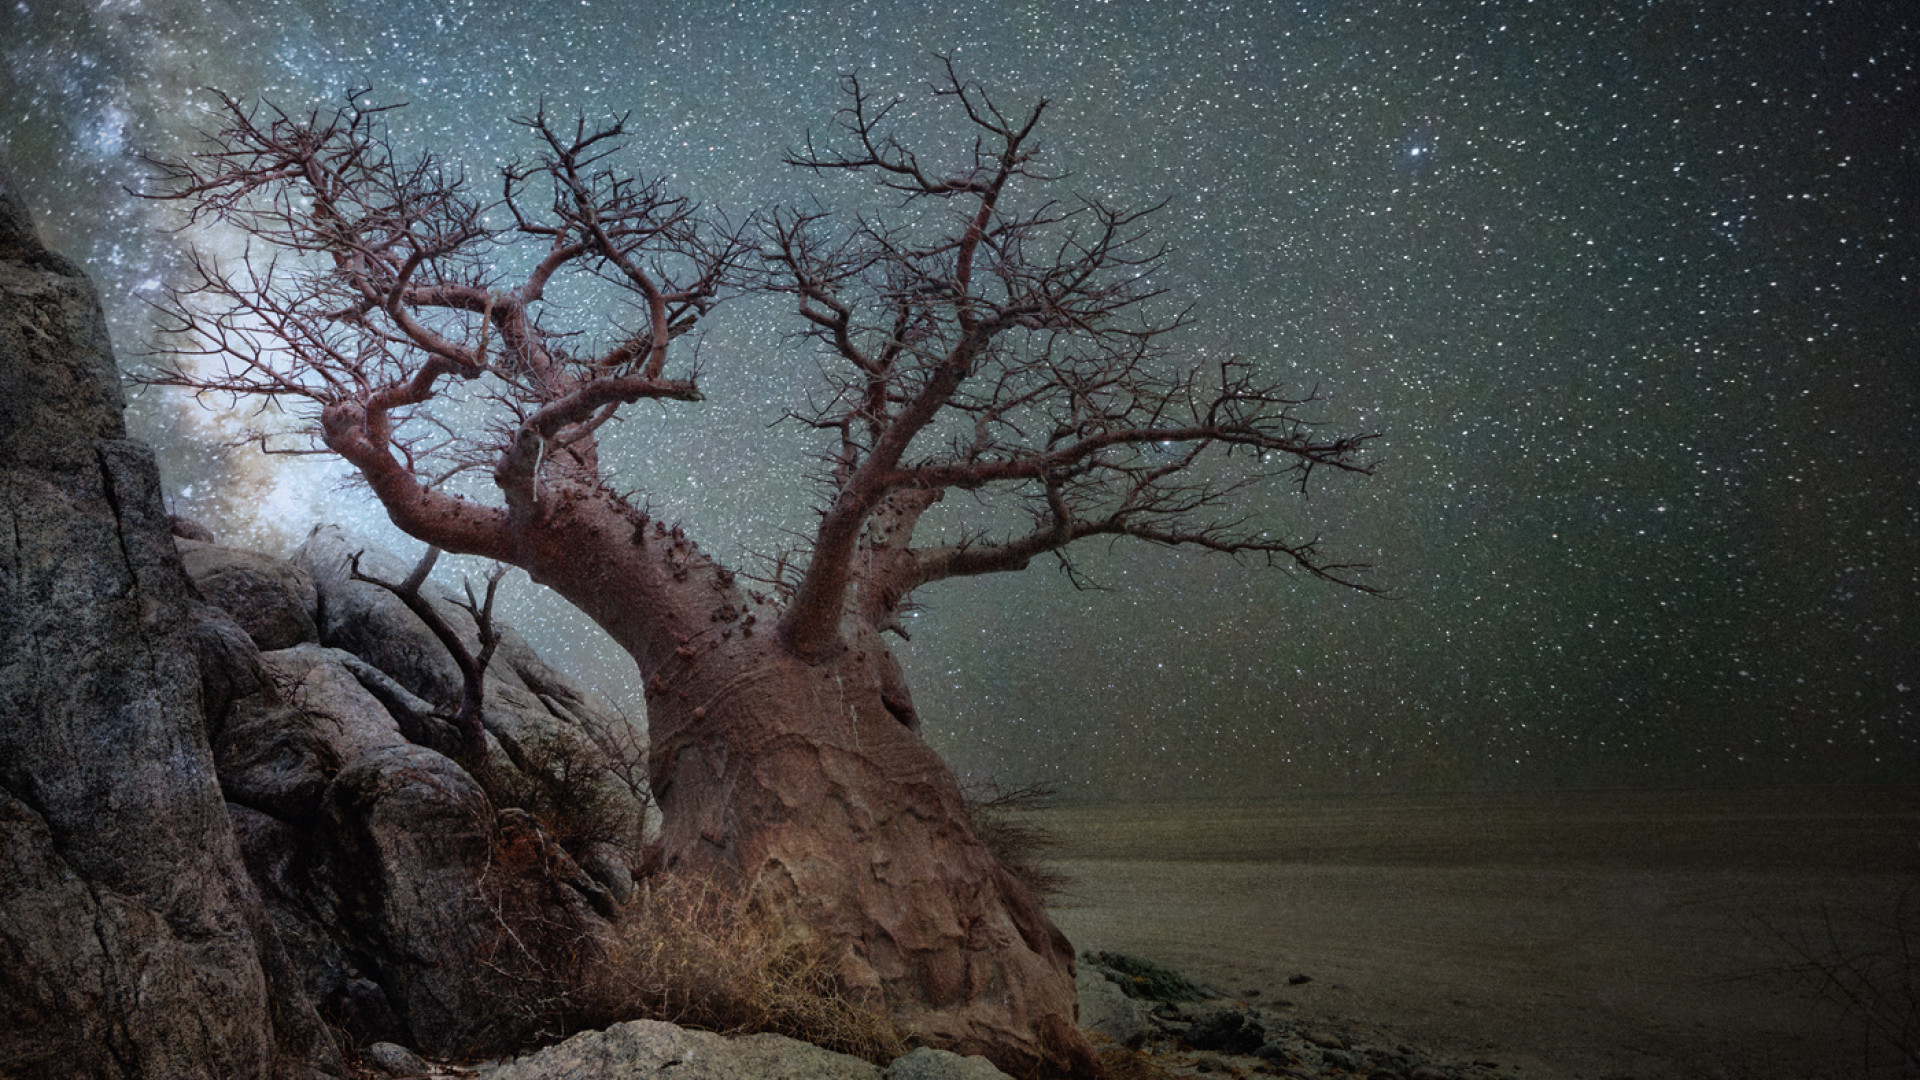 Baobab tree set against starry skies